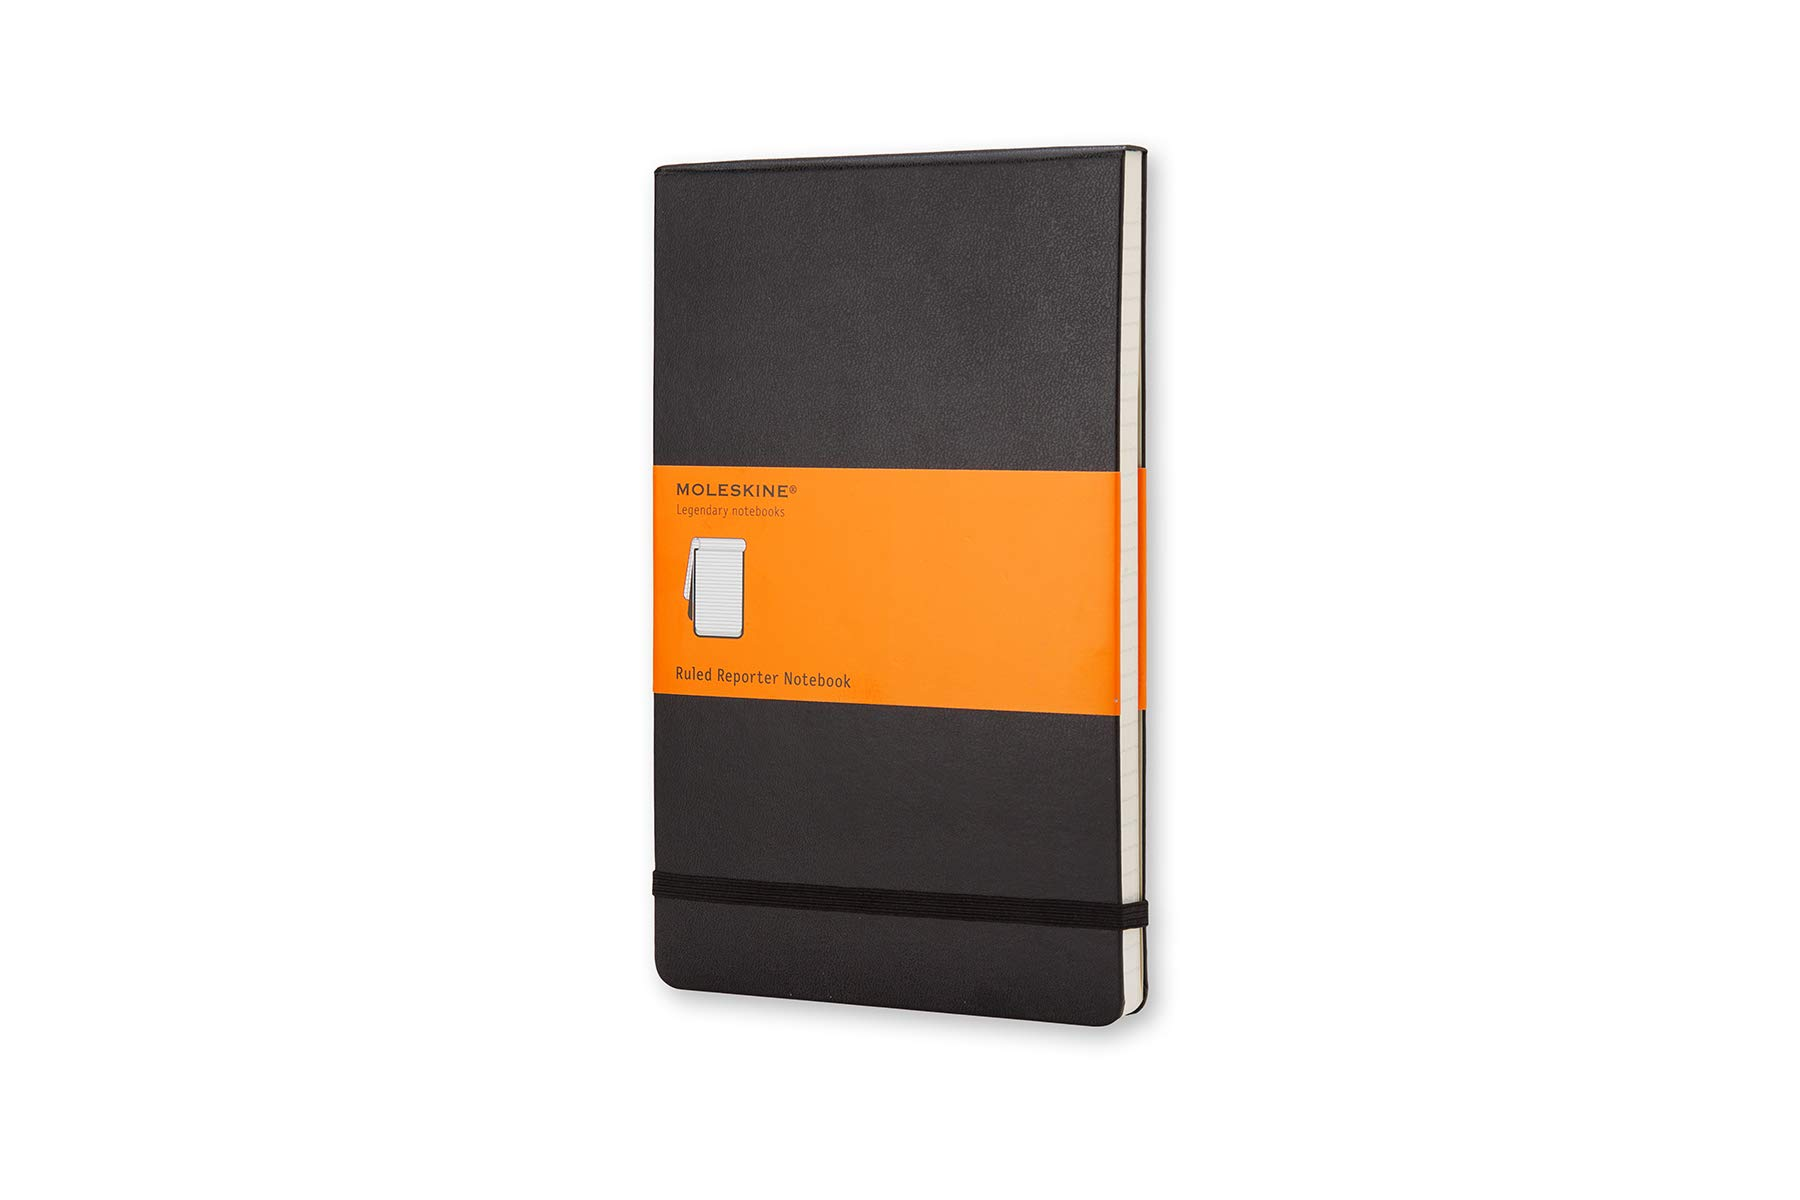 Moleskine Classic Hard Cover Reporter Notebook, Ruled, Large